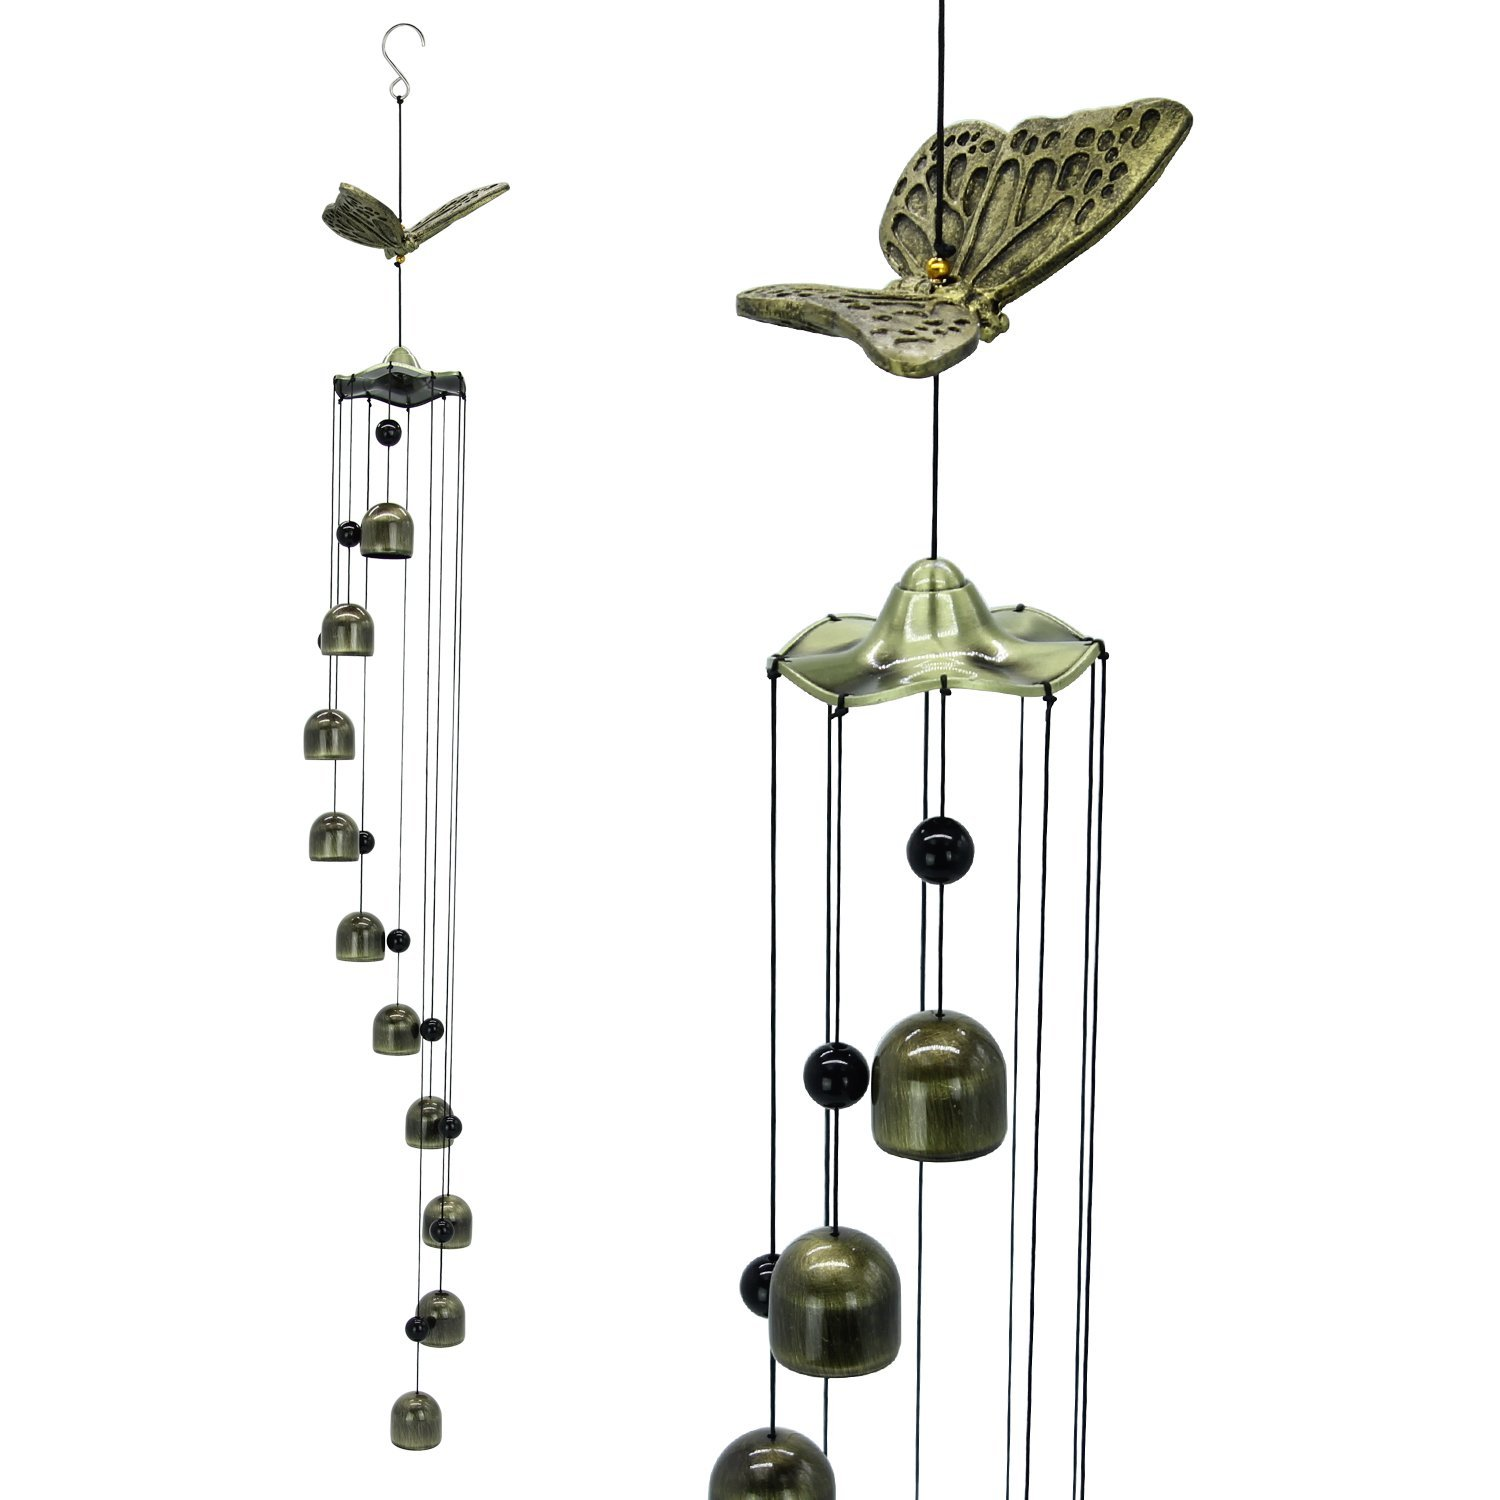 Astarin Butterfly Wind Chimes- 33'' Large Copper Wind Chimes 10 Wind Bells, Memorial Sympathy Wind Chime Clear Sounds, Decorative Wind Chimes Garden Home Patio Yard Indoor, Golden